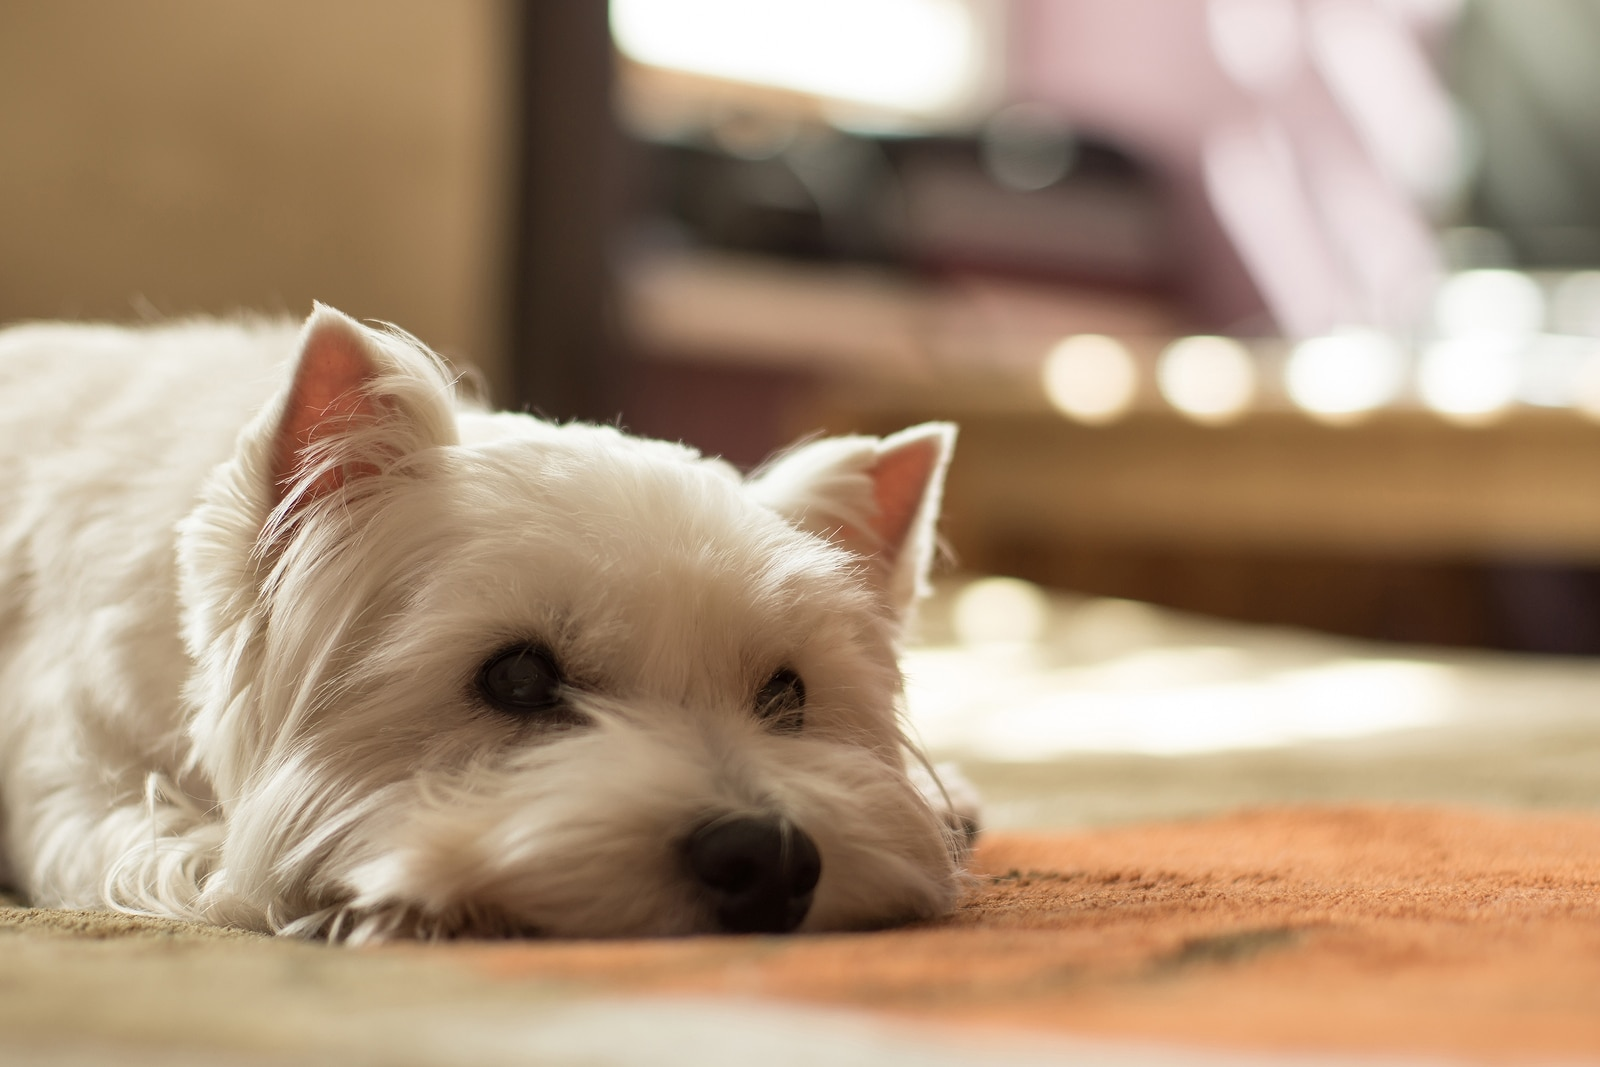 West highland white terrier lying on ground.